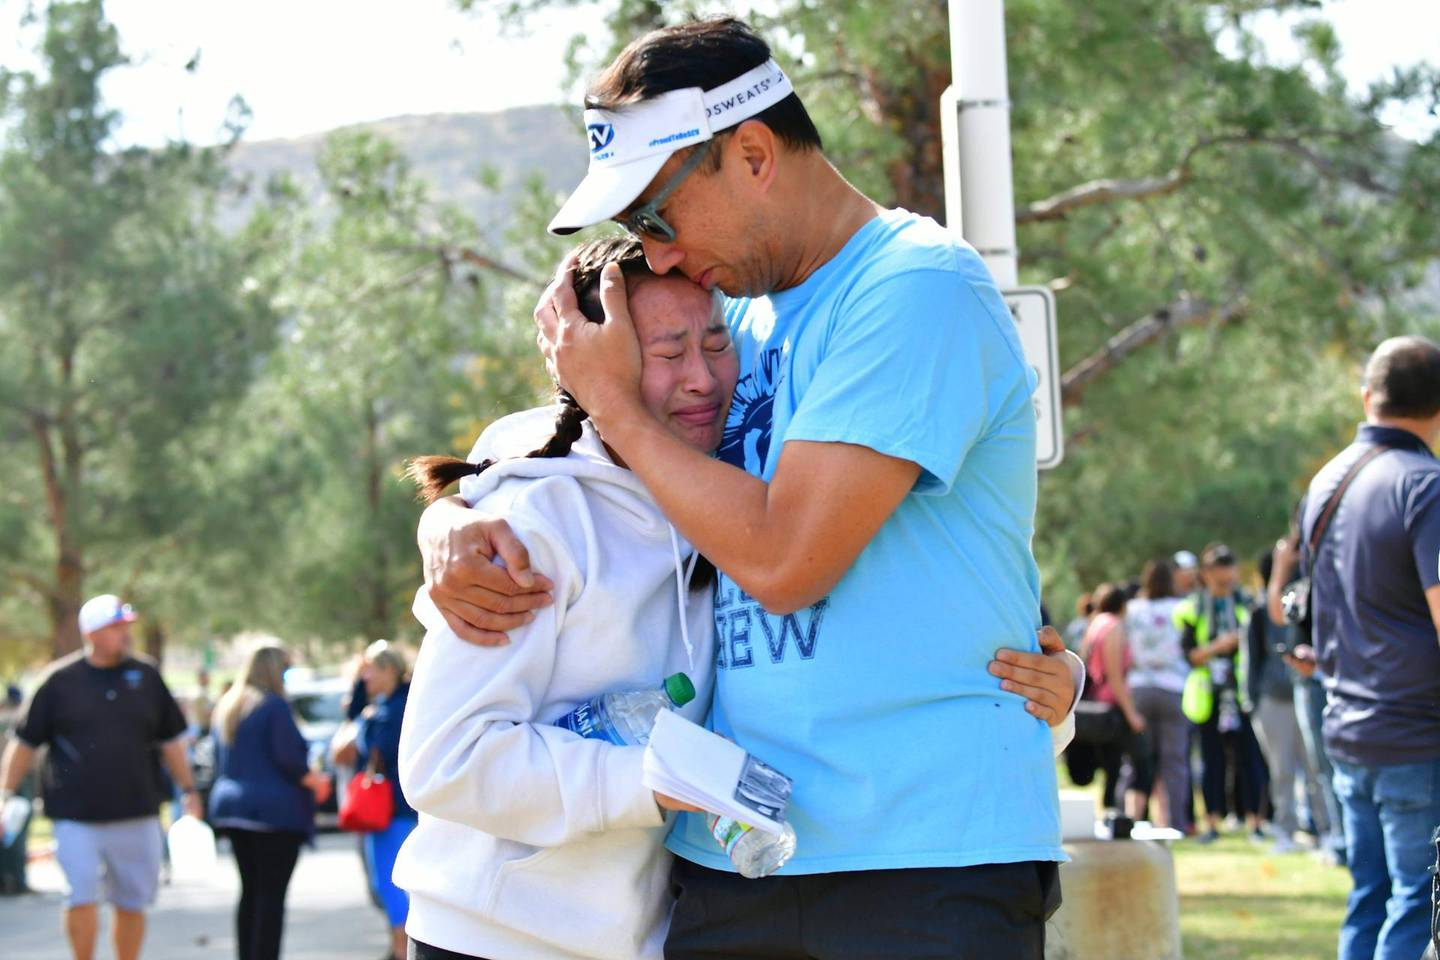 """TOPSHOT - A man embraces his daughter after picking her up at Central Park, after a shooting at Saugus High School in Santa Clarita, California on November 14, 2019. At least four people were injured in a shooting at a high school north of Los Angeles Thursday, triggering a police hunt for the suspect who was later taken into custody.One female was killed Thursday, hospital officials said. The suspect was in custody and taken to a hospital for treatment, while at least three others were injured in the shooting at Saugus High School in Santa Clarita, 40 miles (65 kilometers) north of Los Angeles.""""One female deceased patient. Two critical male patients. One male patient in good condition,"""" tweeted the nearby Henry Mayo Hospital in Valencia.No further details of the deceased were provided.   / AFP / Frederic J. BROWN"""